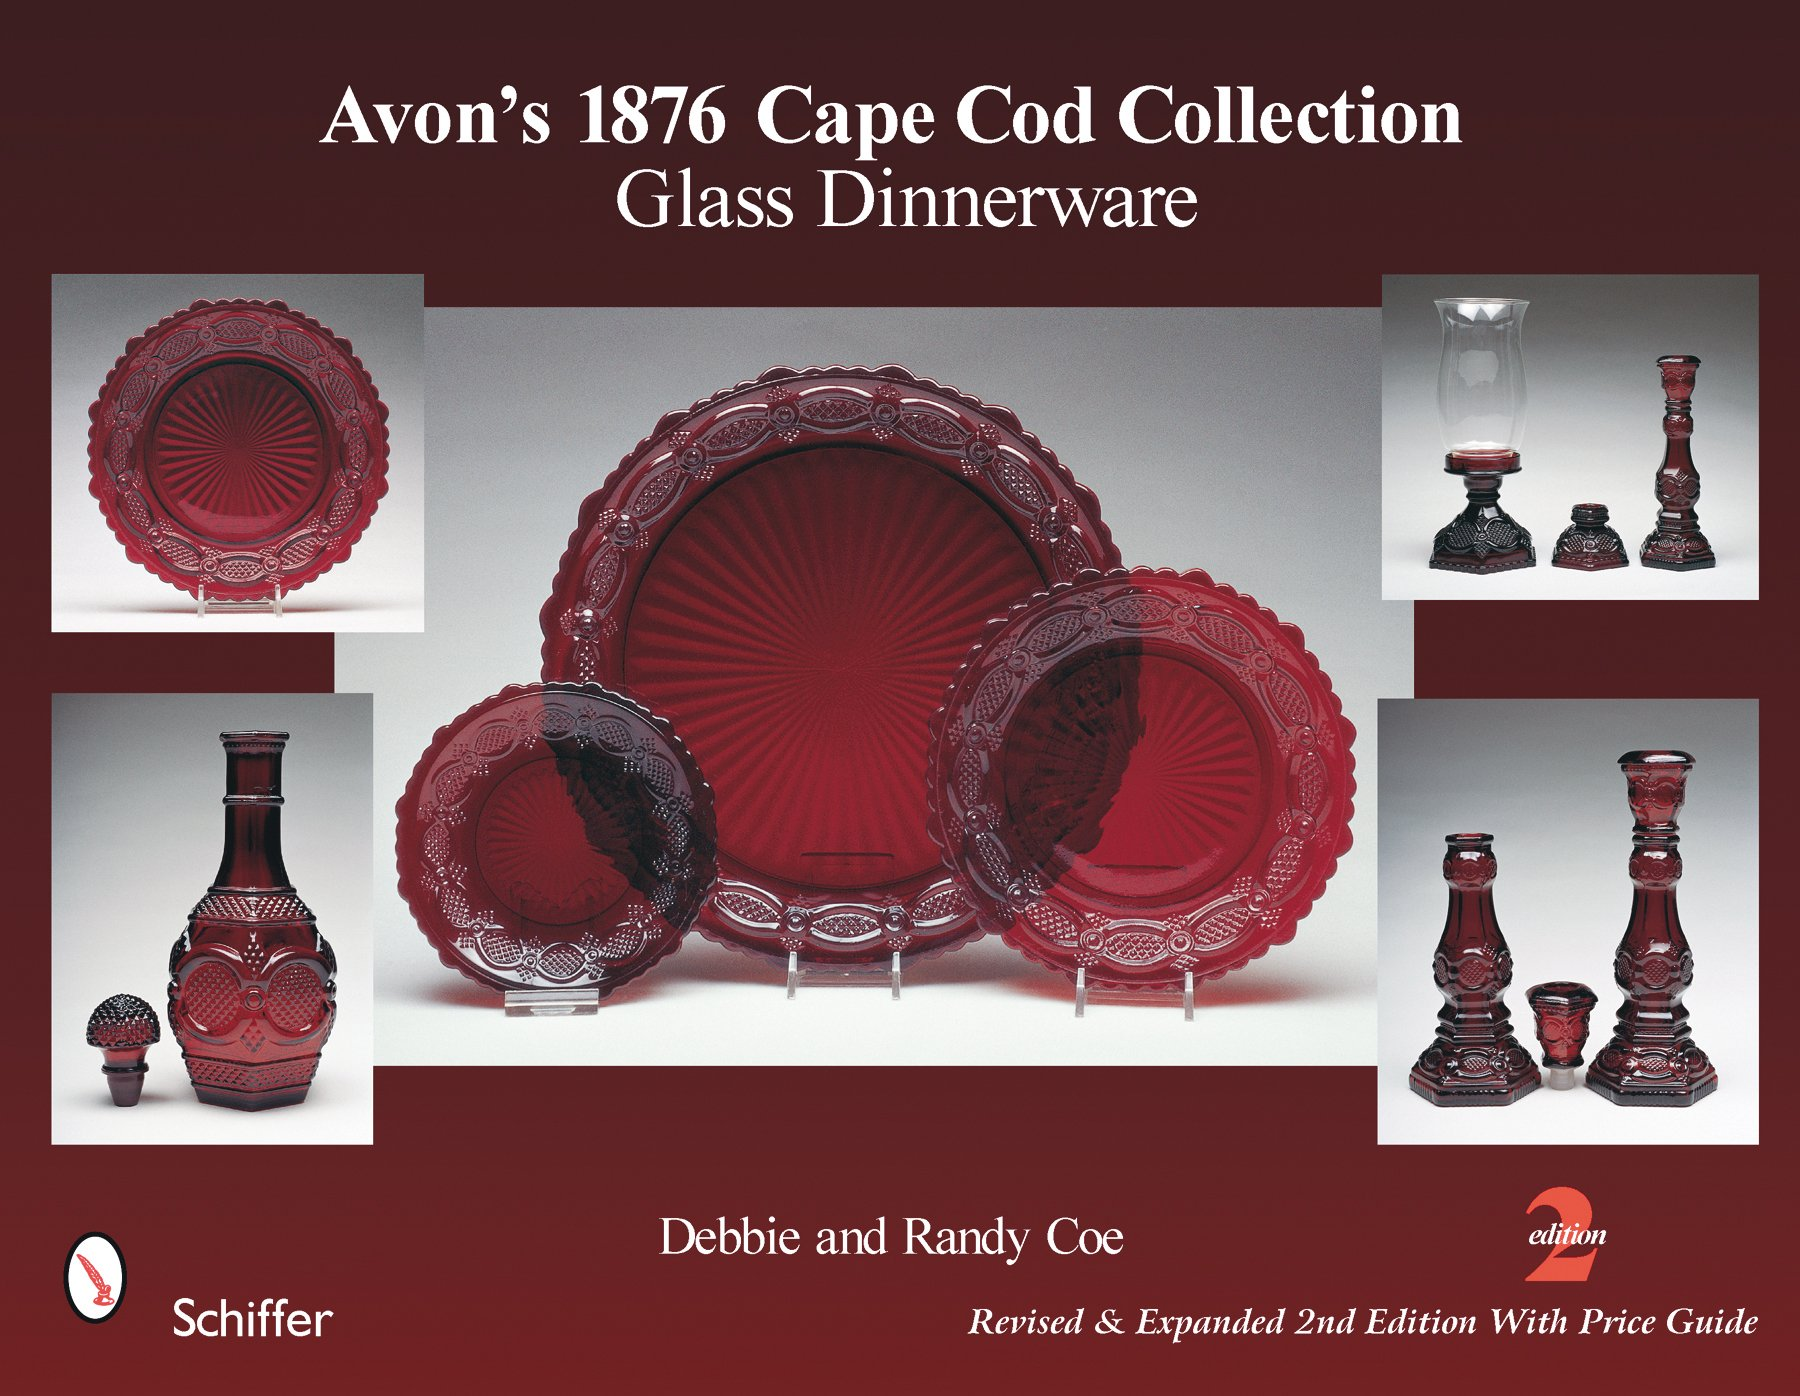 Avons 1876 Cape Cod Collection Glass Dinnerware Debbie Coe Randy